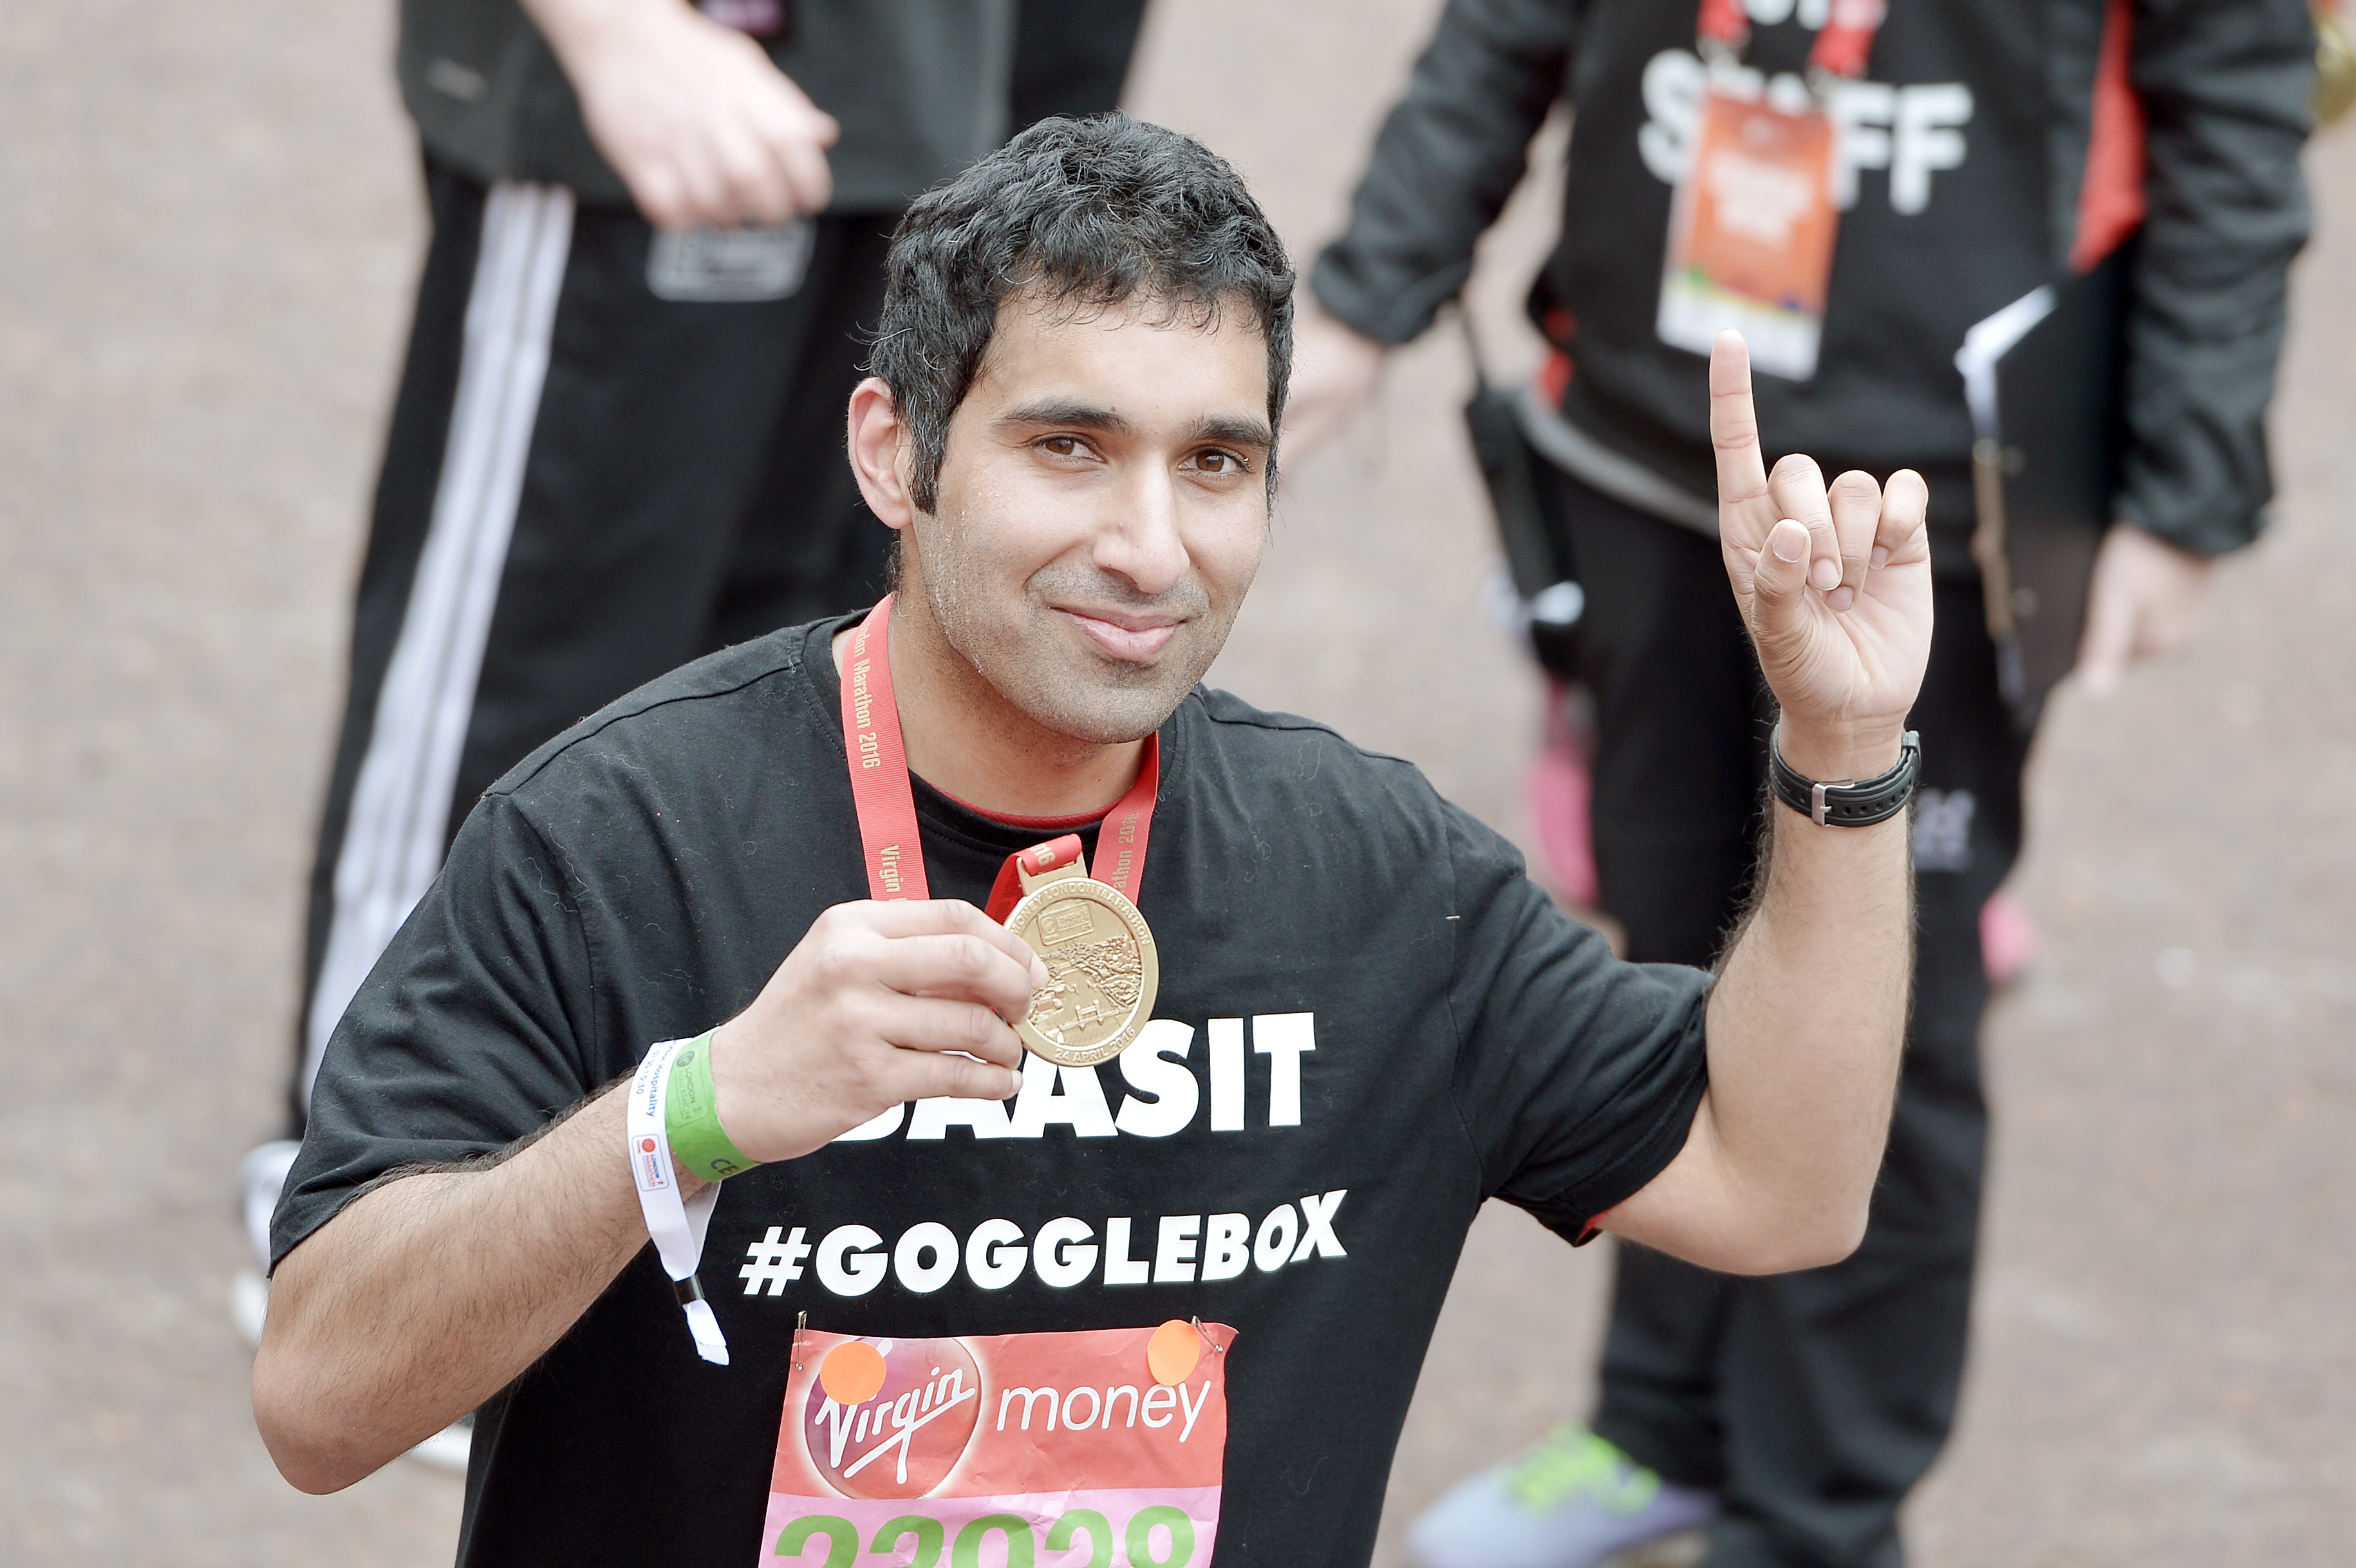 LONDON, ENGLAND - APRIL 24: Baasit Siddiqui poses with his medal after completing the Virgin Money London Marathon on April 24, 2016 in London, England. (Photo by Jeff Spicer/Getty Images)